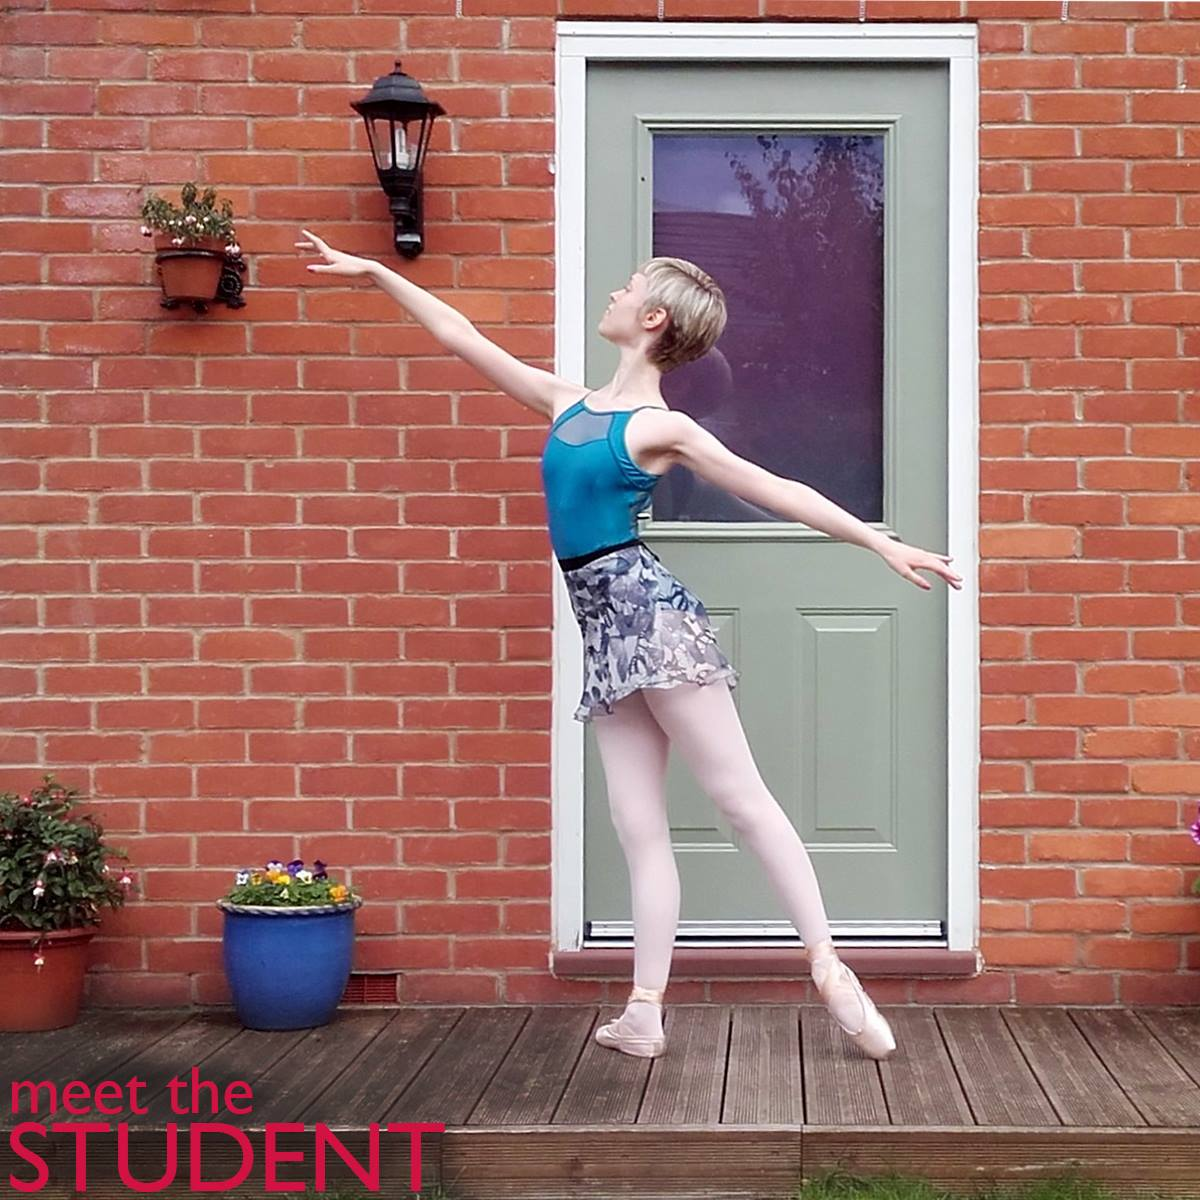 meet-the-student-georgina-butler-royal-academy-of-dance-3